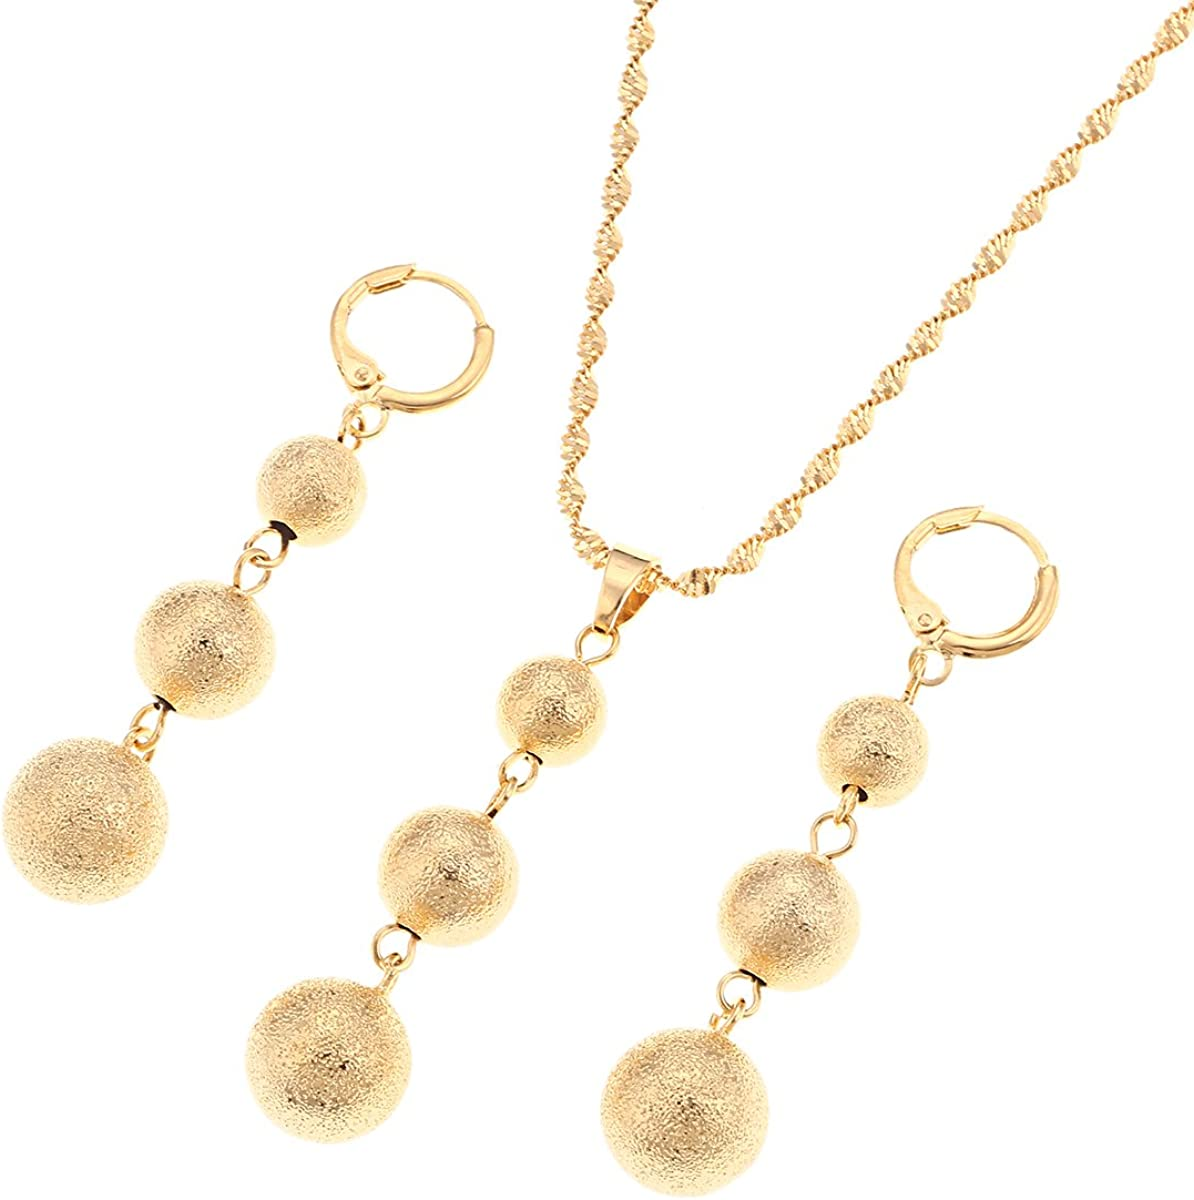 Bead Jewelry Sets Round Pendant Chain Necklace Ball Earrings Ethiopian Jewelry